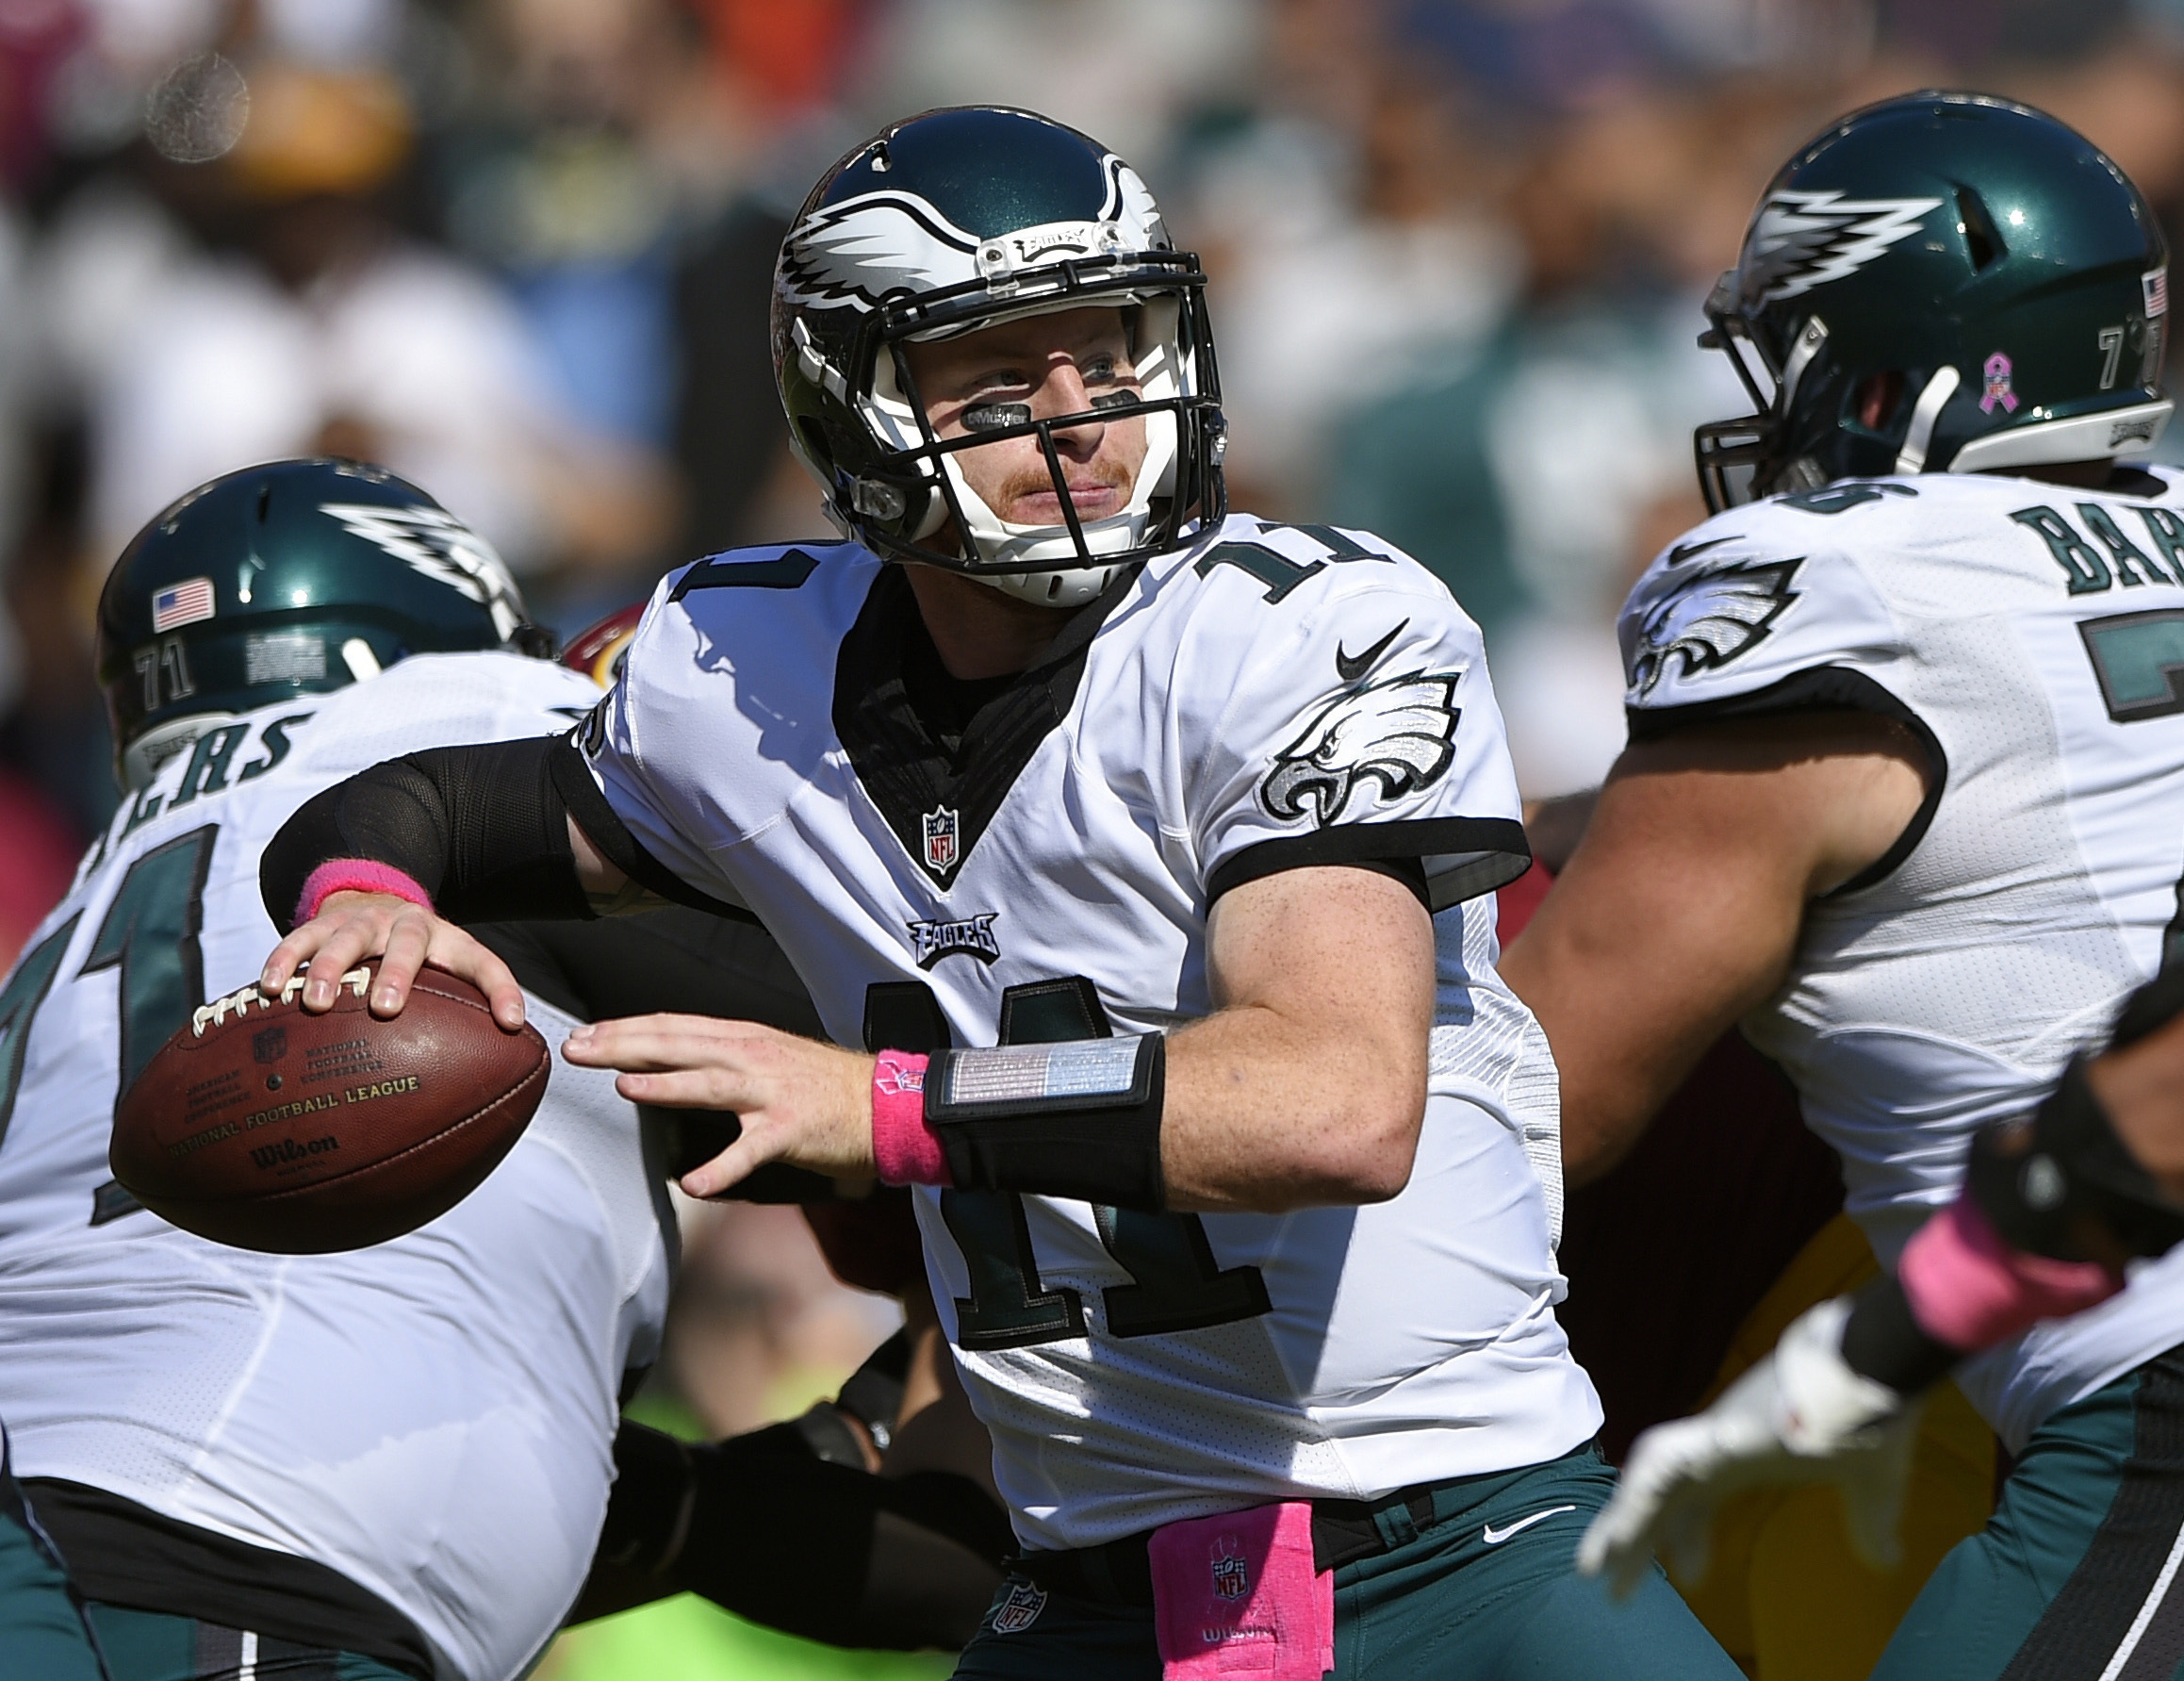 FILE - In this Sunday, Oct. 16, 2016, file photo, Philadelphia Eagles quarterback Carson Wentz throws to a receiver in the first half of an NFL football game against the Washington Redskins in Landover, Md. Wentz leads NFL rookies with eight passing TDs.